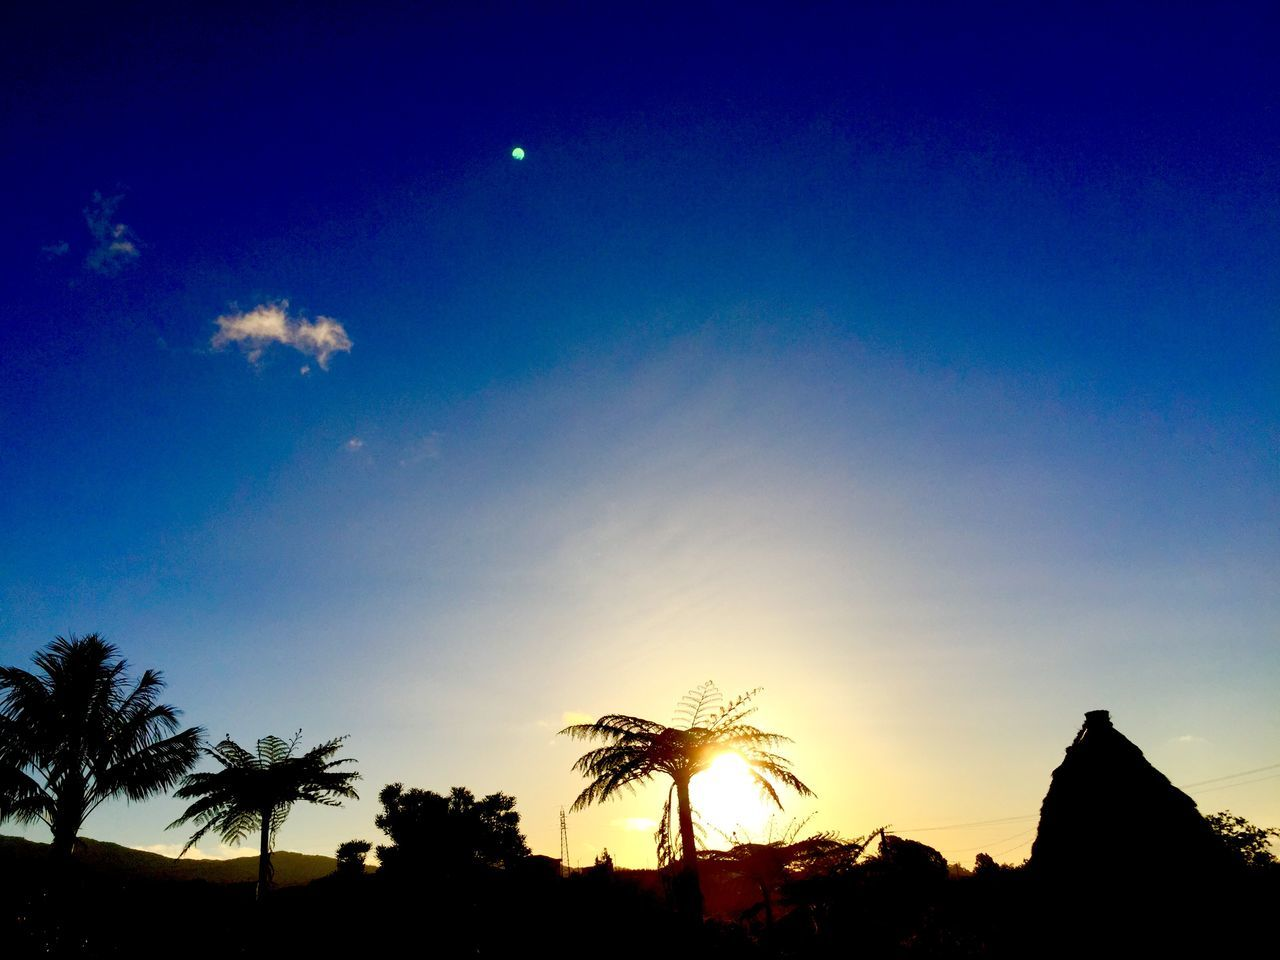 beauty in nature, silhouette, nature, scenics, tranquil scene, sky, moon, tranquility, sunset, low angle view, tree, blue, palm tree, no people, outdoors, growth, day